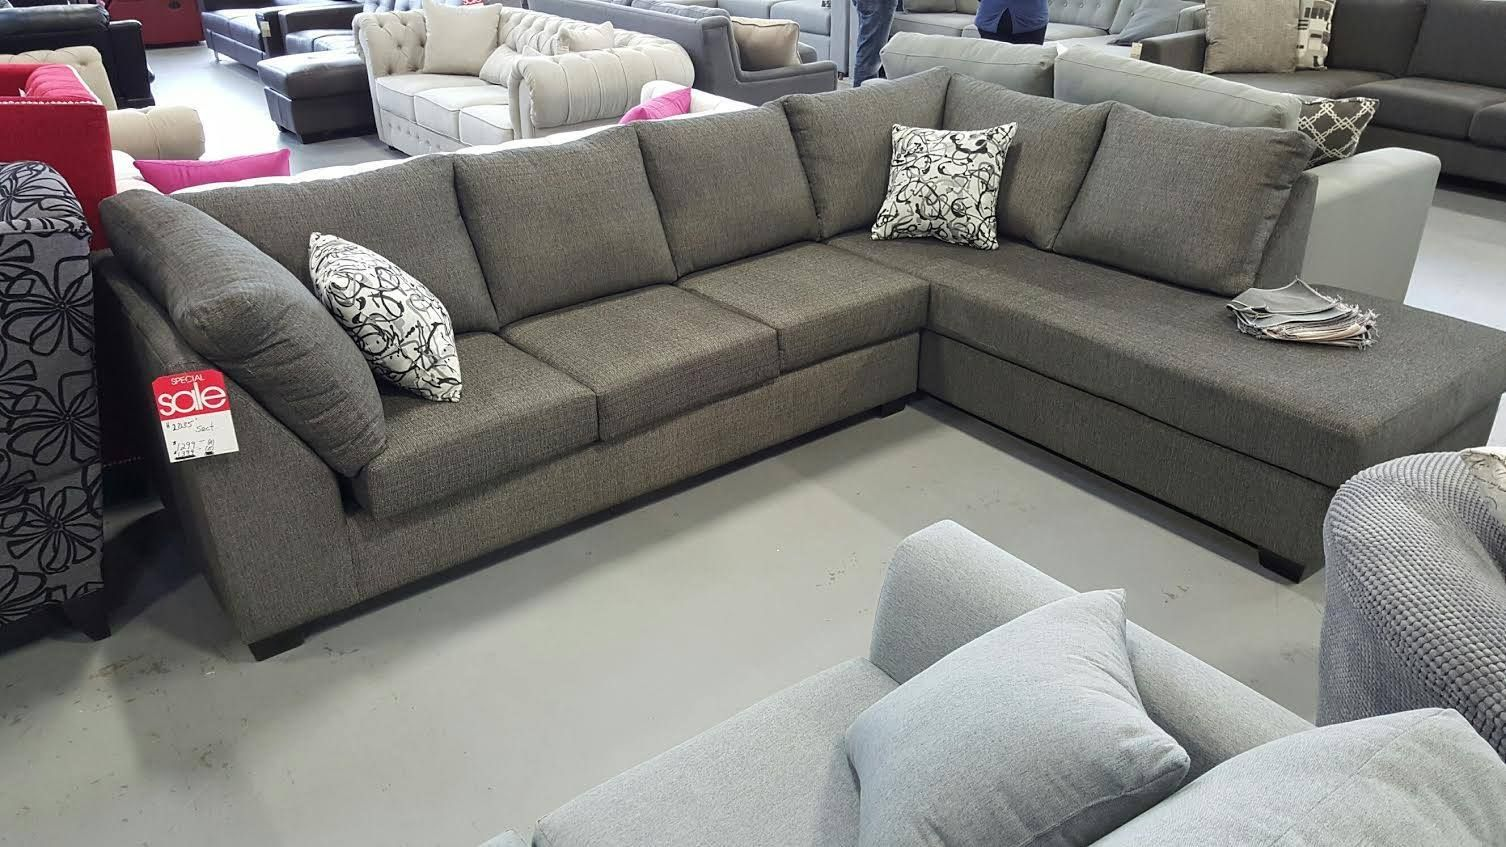 Ten Places To Shop Furniture In Vancouver Liquidation Furniture Furniture Furniture Vancouver Furniture Shop